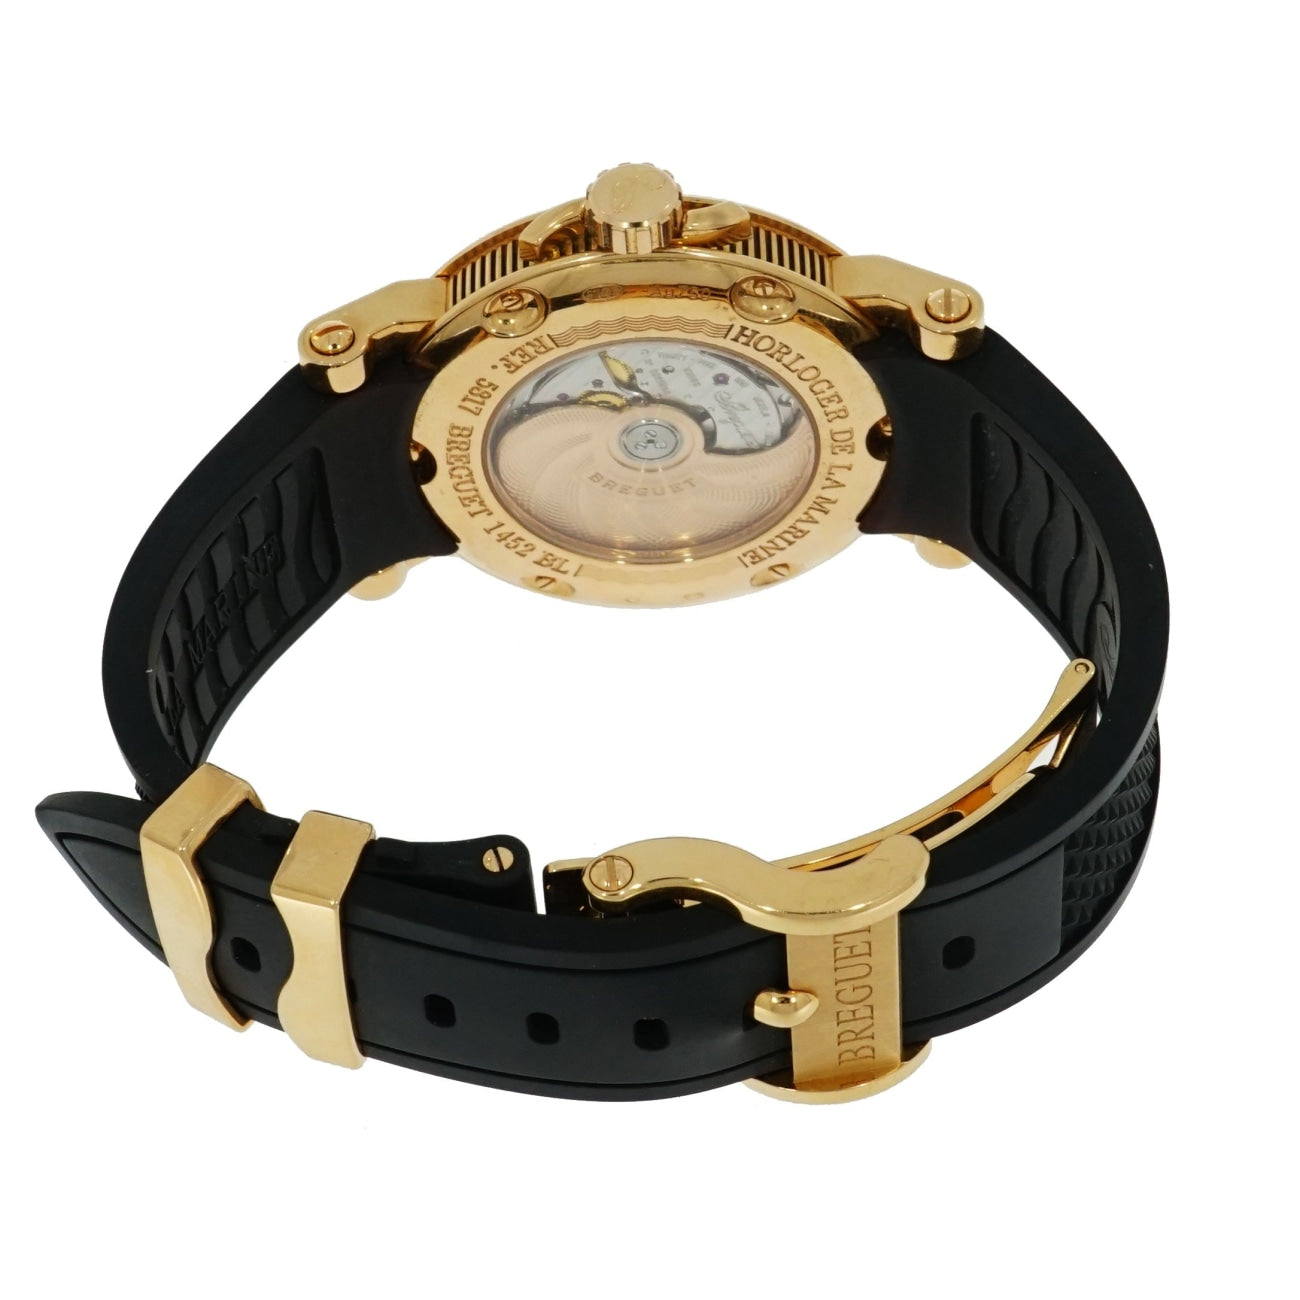 Pre-Owned Breguet Watches - Marine | Manfredi Jewels